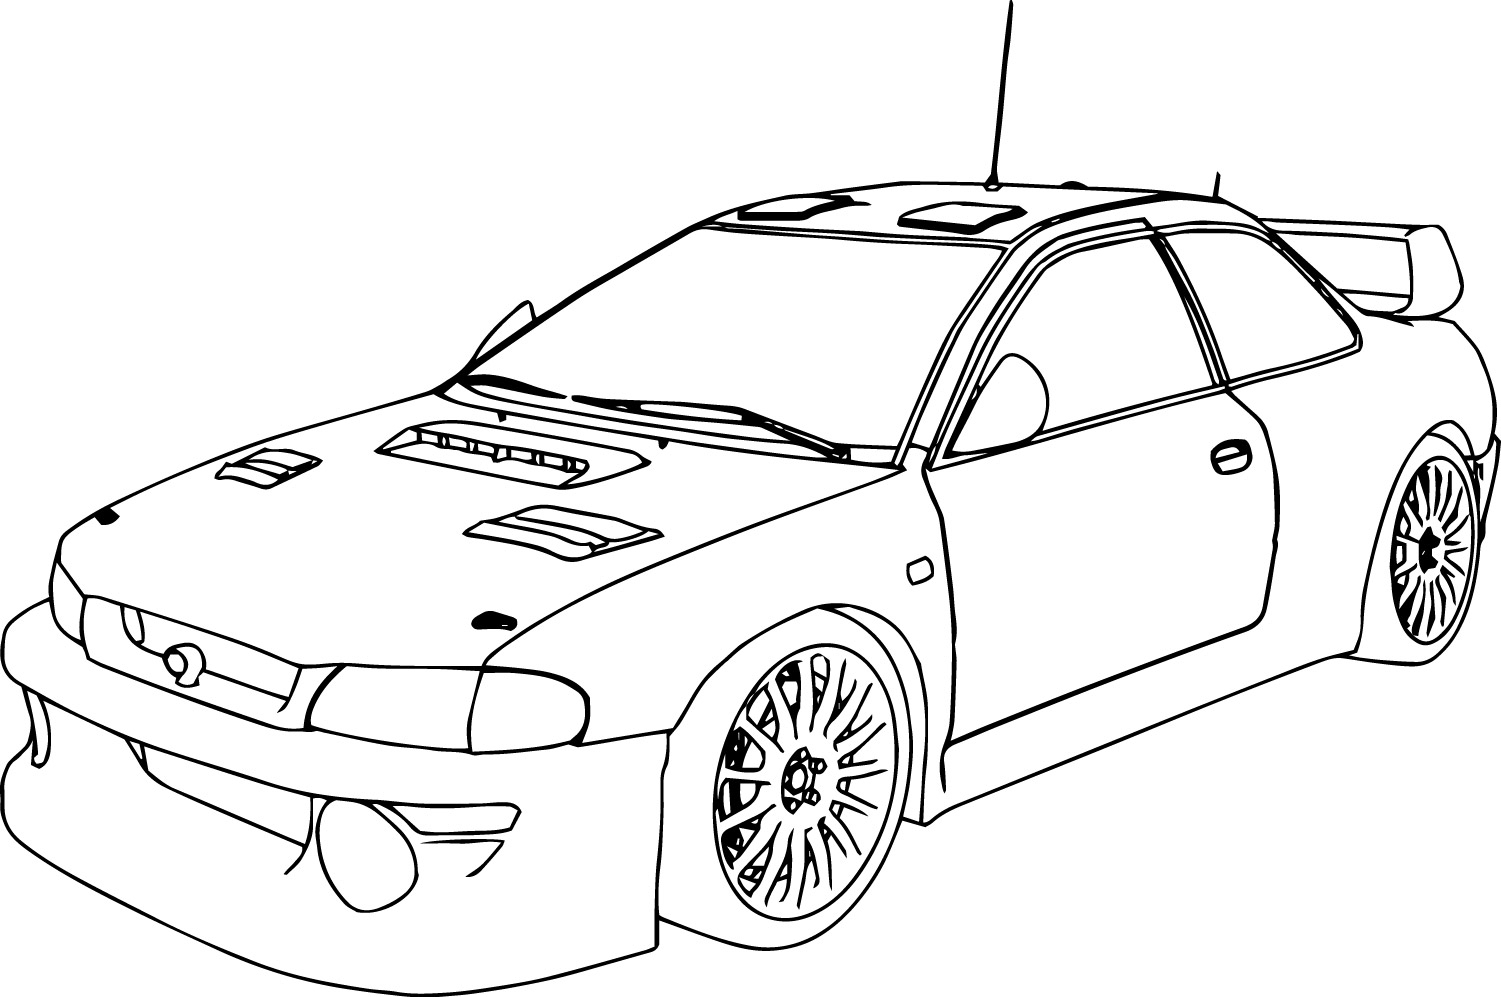 1501x997 Awesome Cartoon Cars Coloring Pages Collection Printable